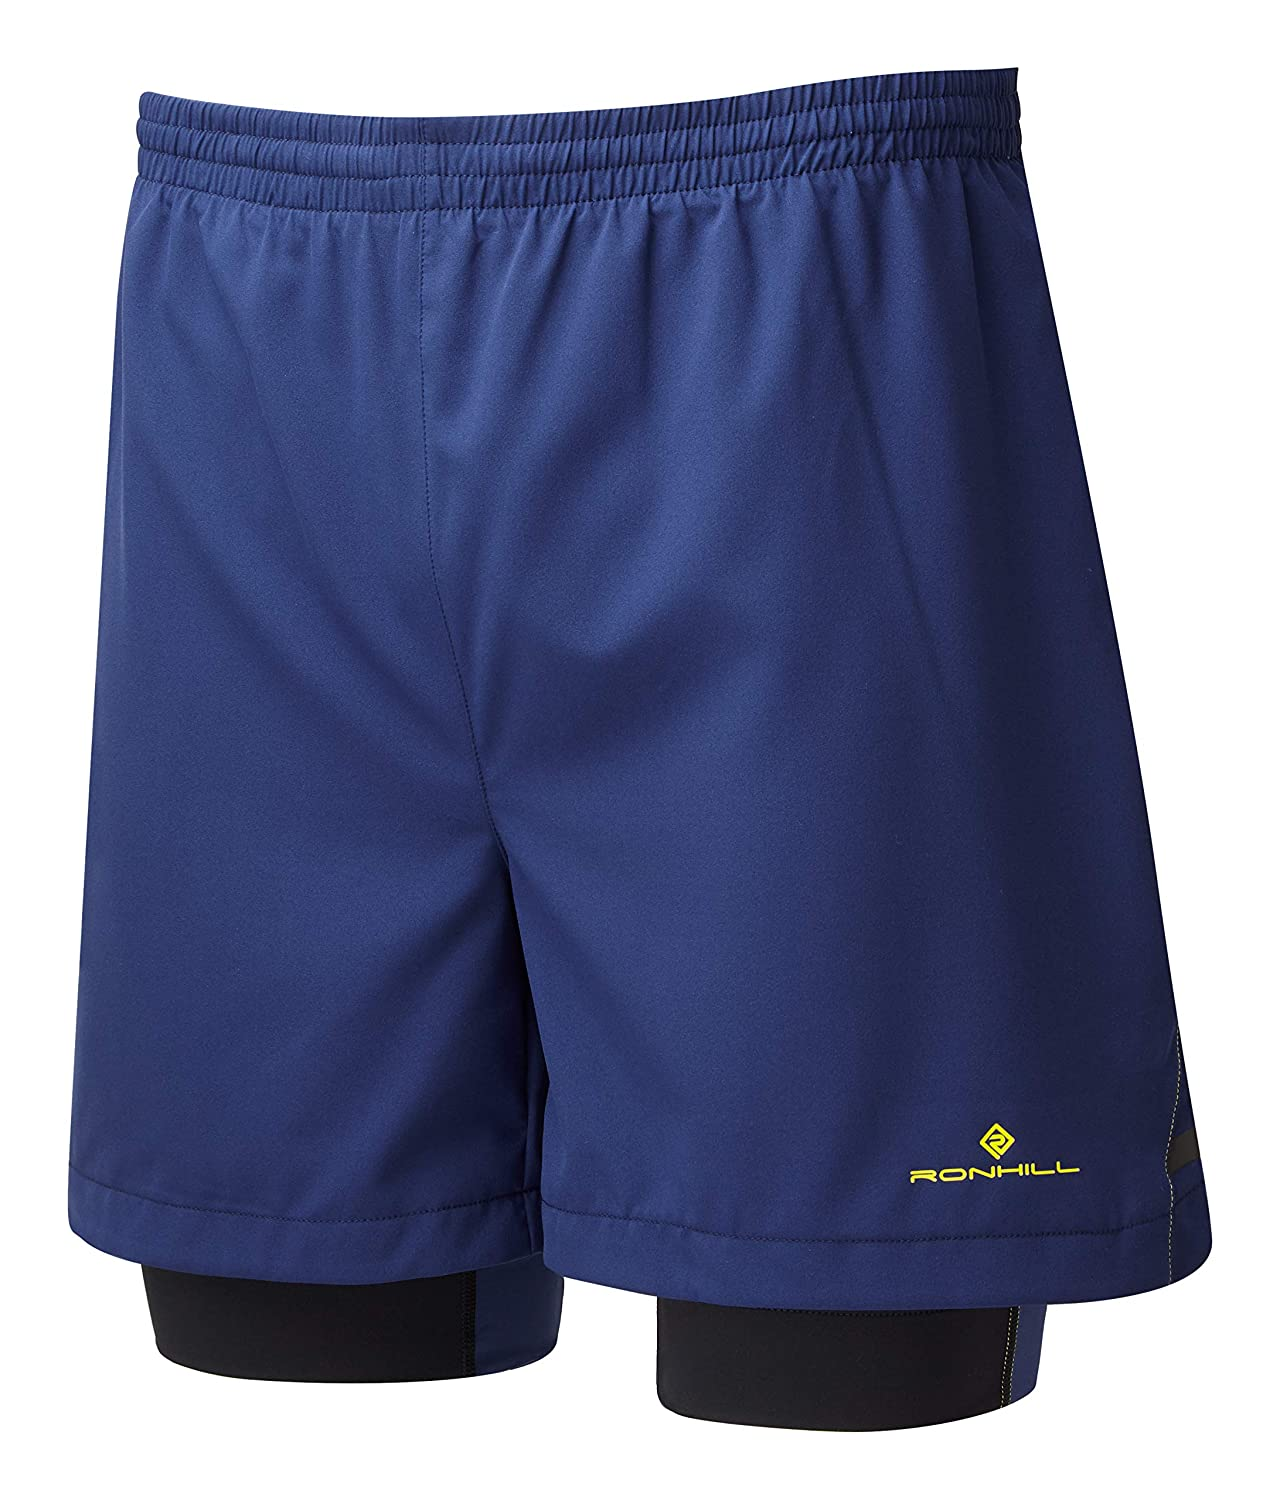 Ronhill Stride Twin 5 Shorts